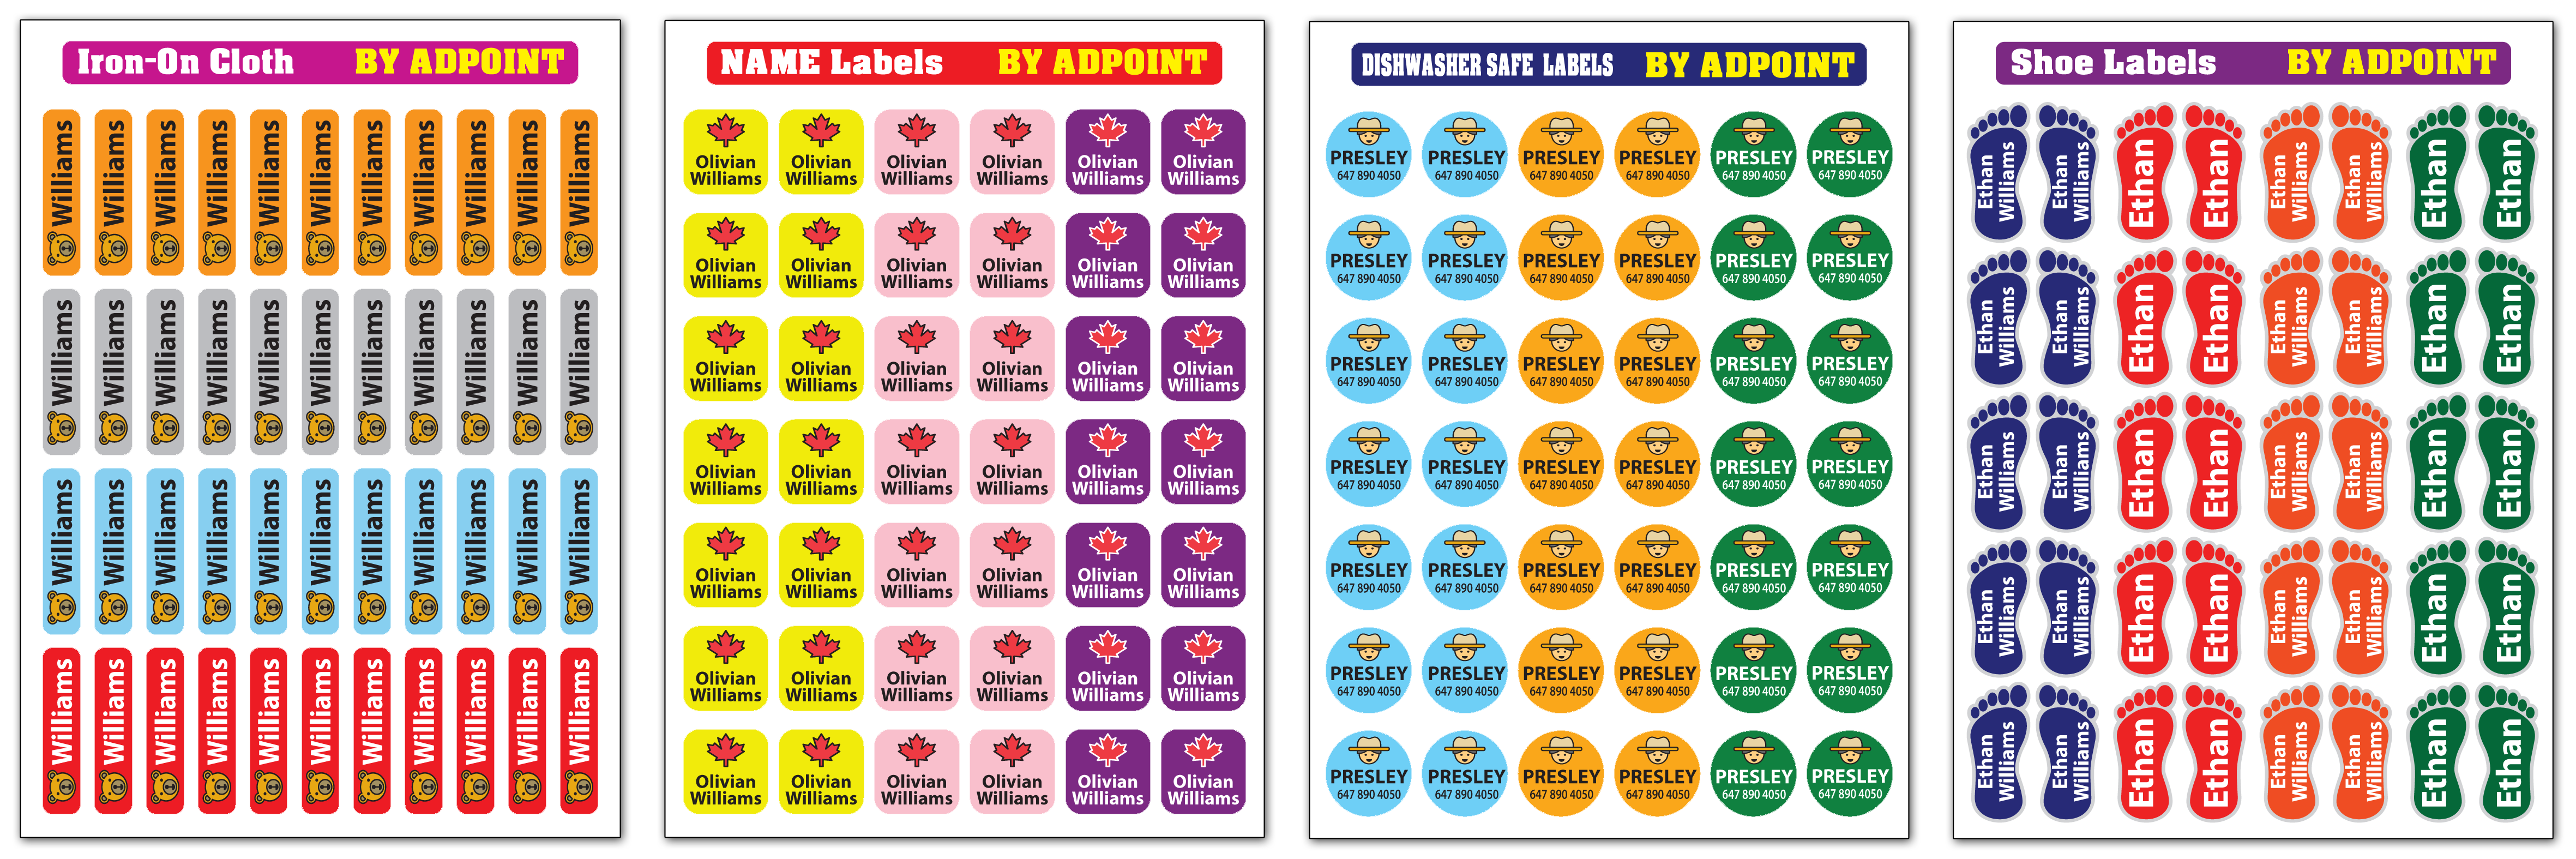 Free Label Sample - Adpoint Promotional Products Inc.